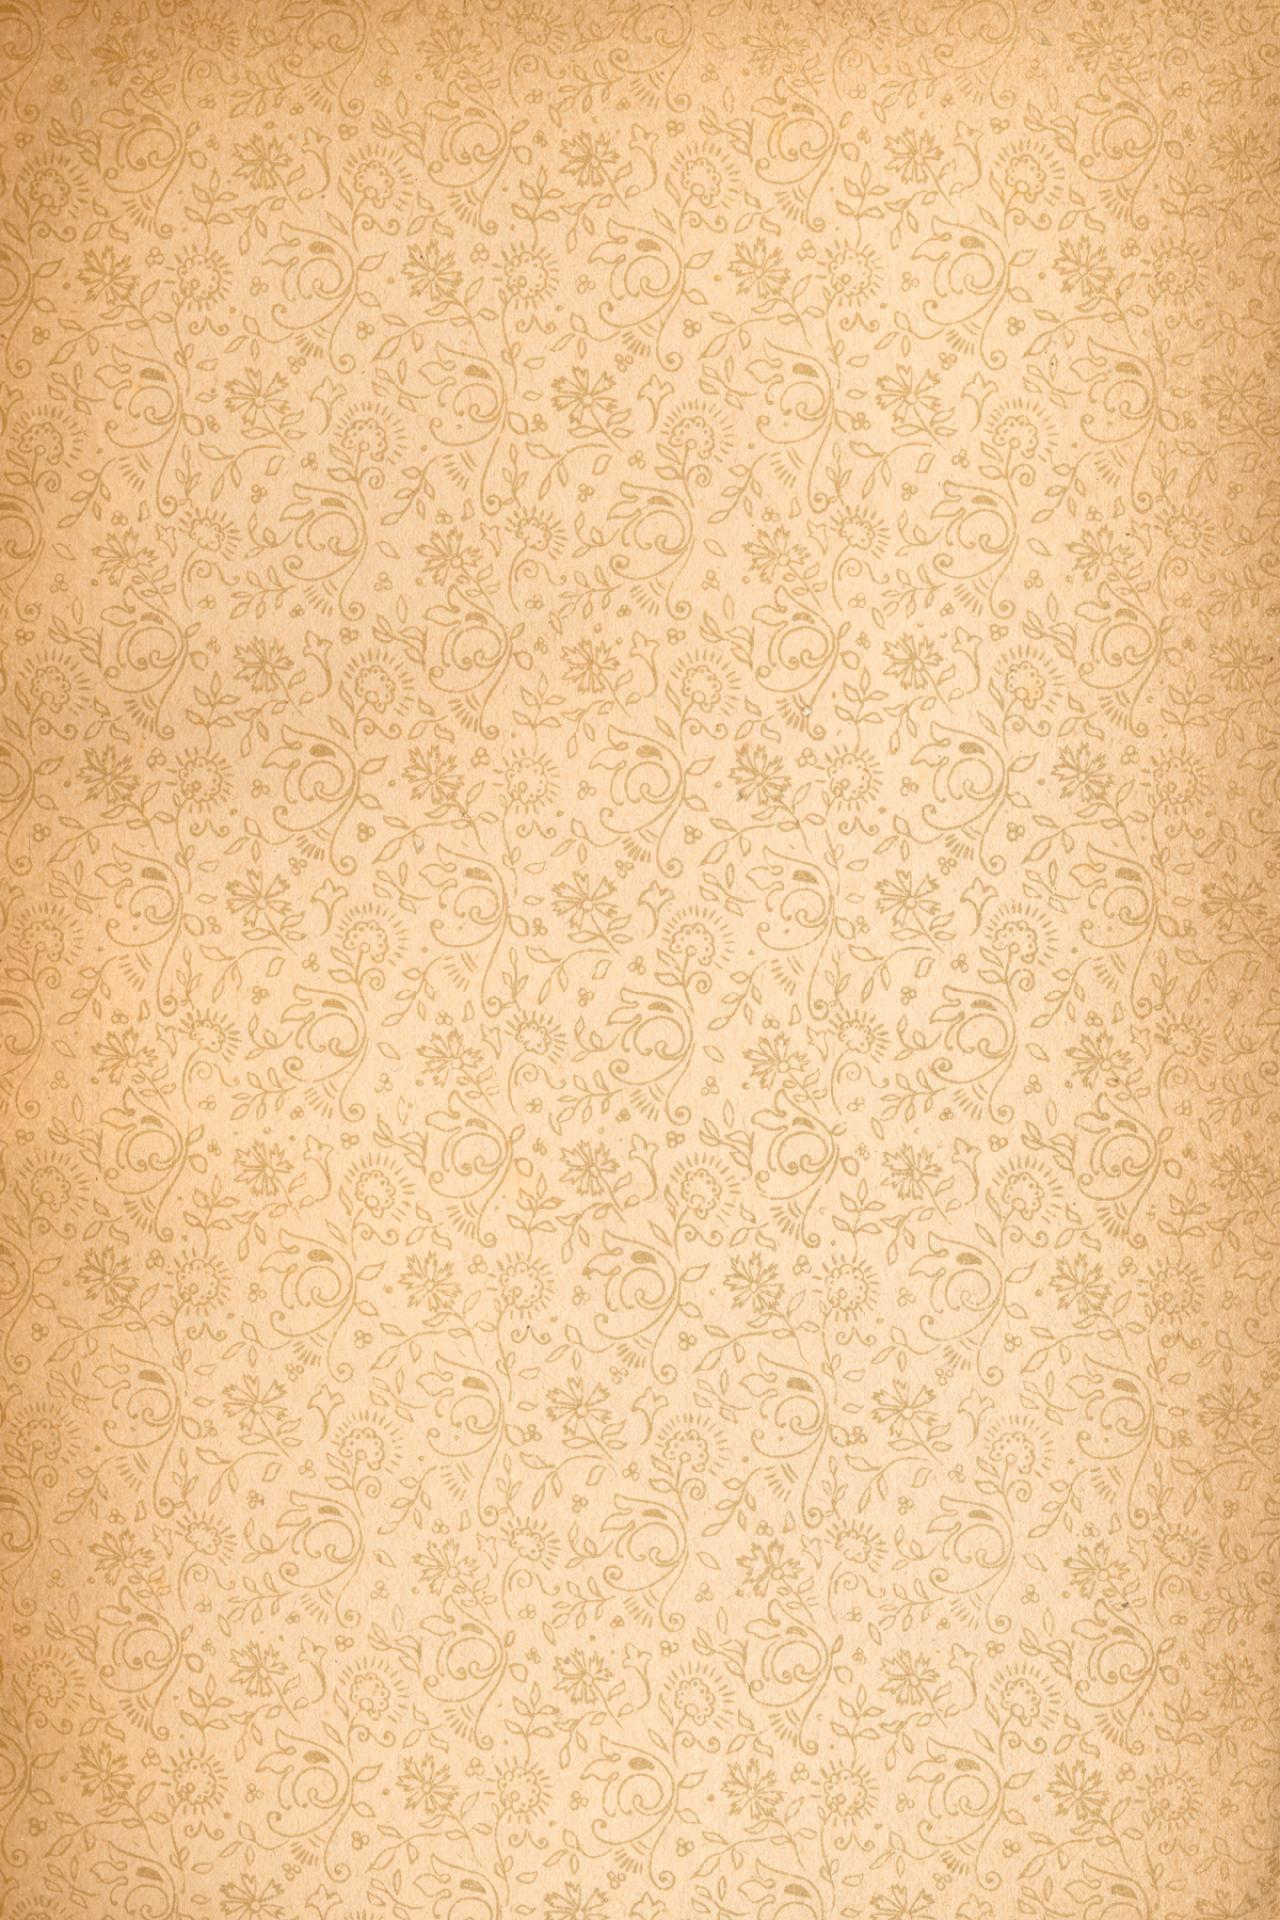 Free photo: Paper Texture - Vintage Flourishes - resource, scan ...